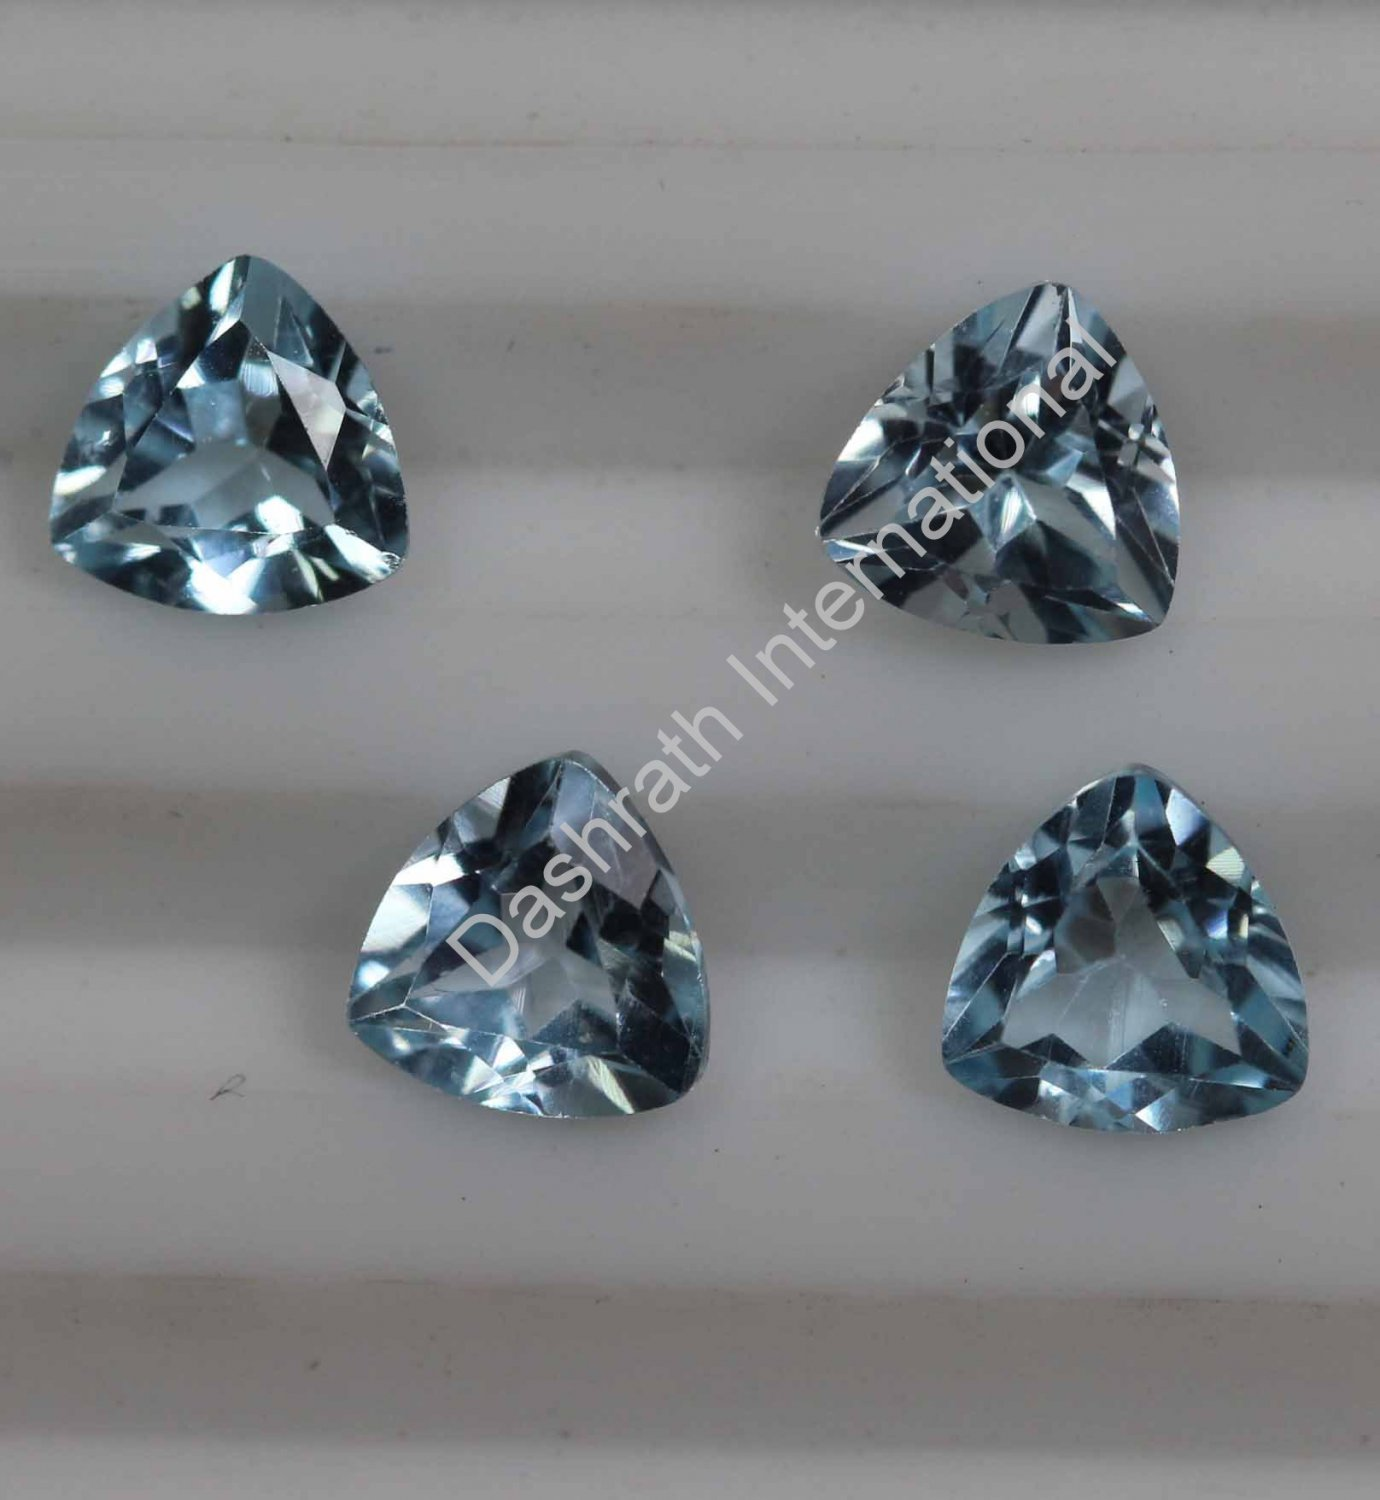 6mm Natural Sky Blue Topaz Faceted Cut Trillion 25 Pieces Lot Top Quality Loose Gemstone